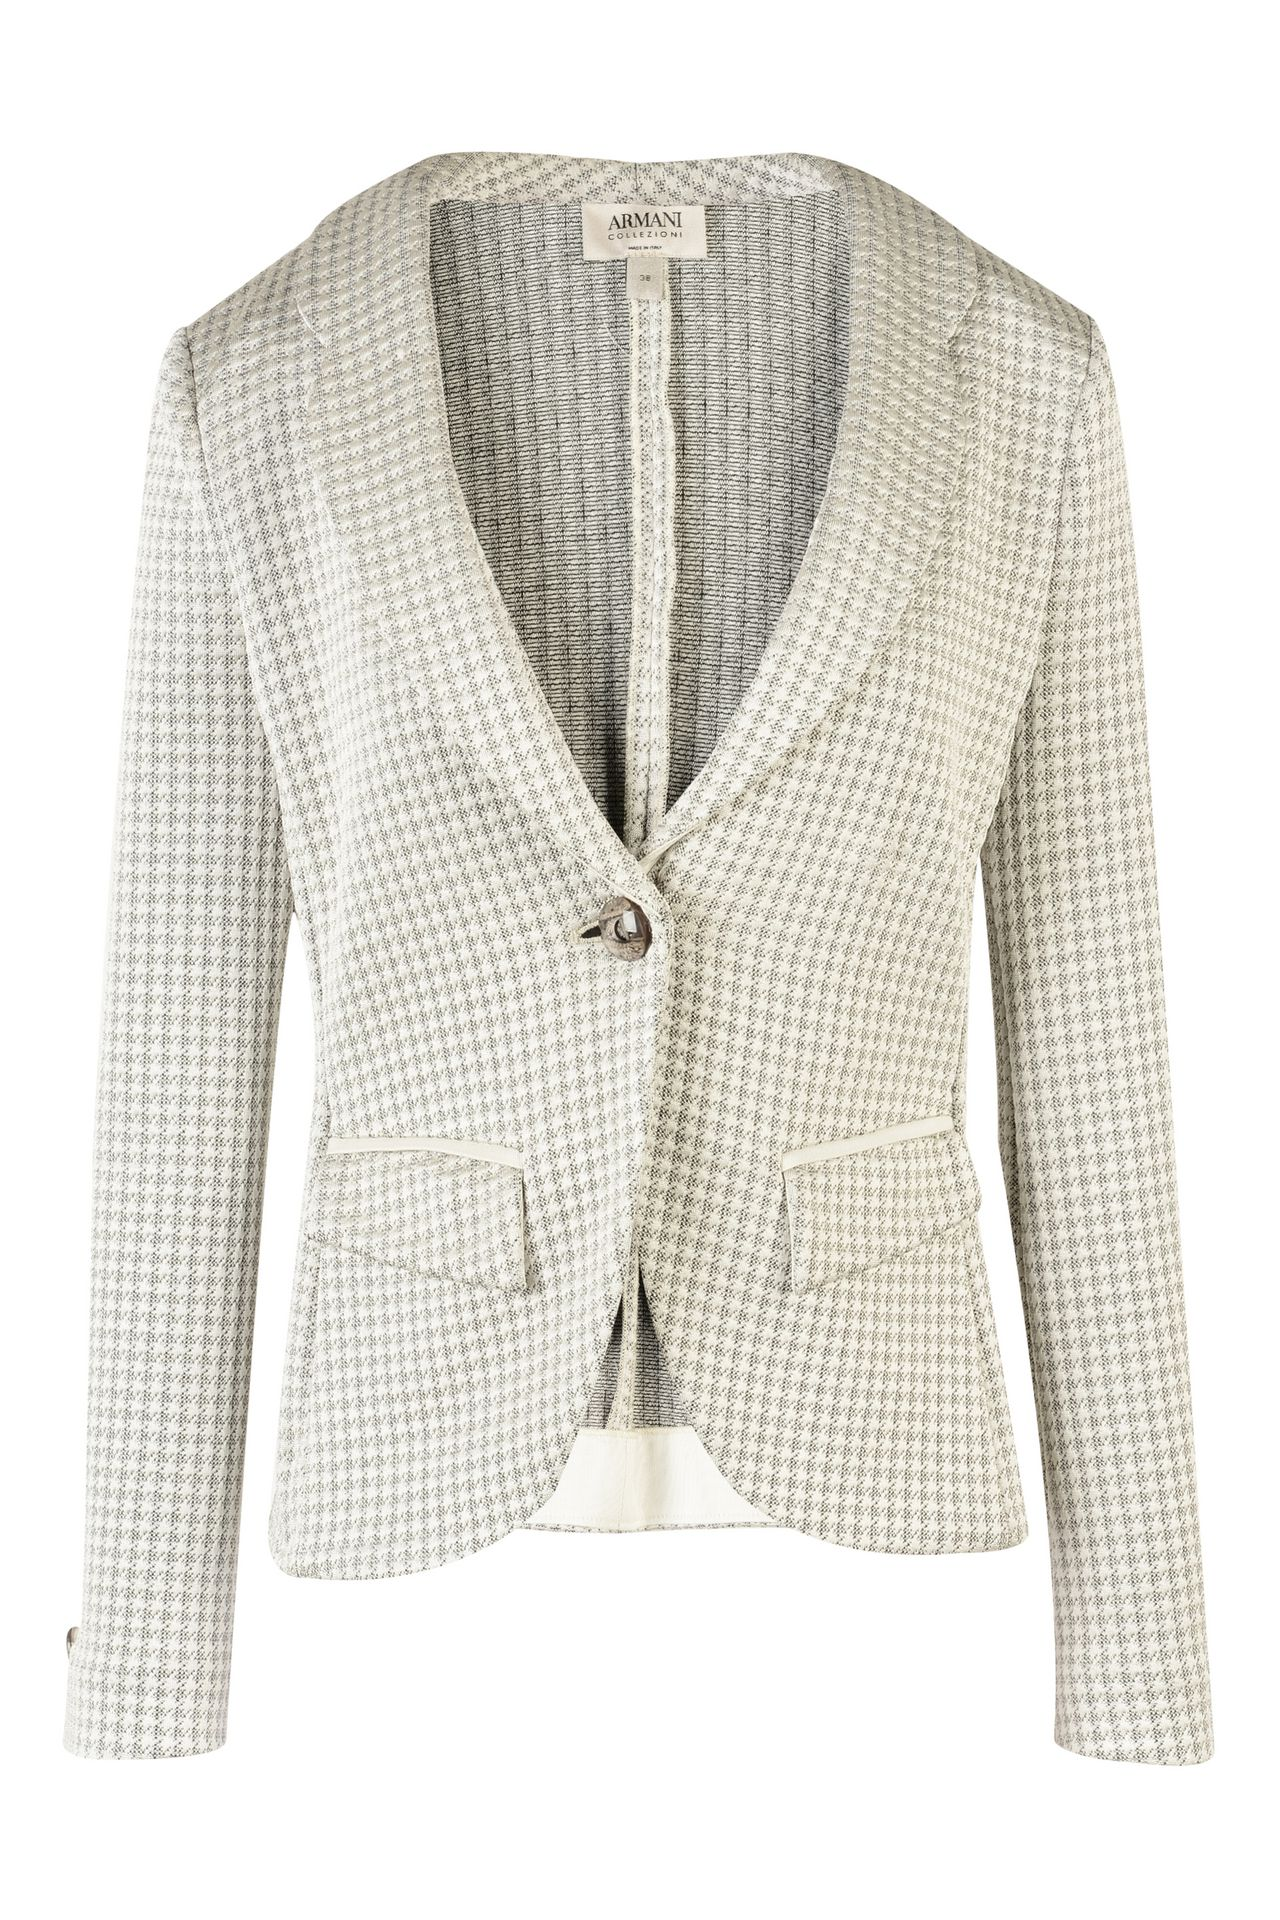 Armani Collezioni Women ONE BUTTON HOUNDSTOOTH JACQUARD JACKET ...